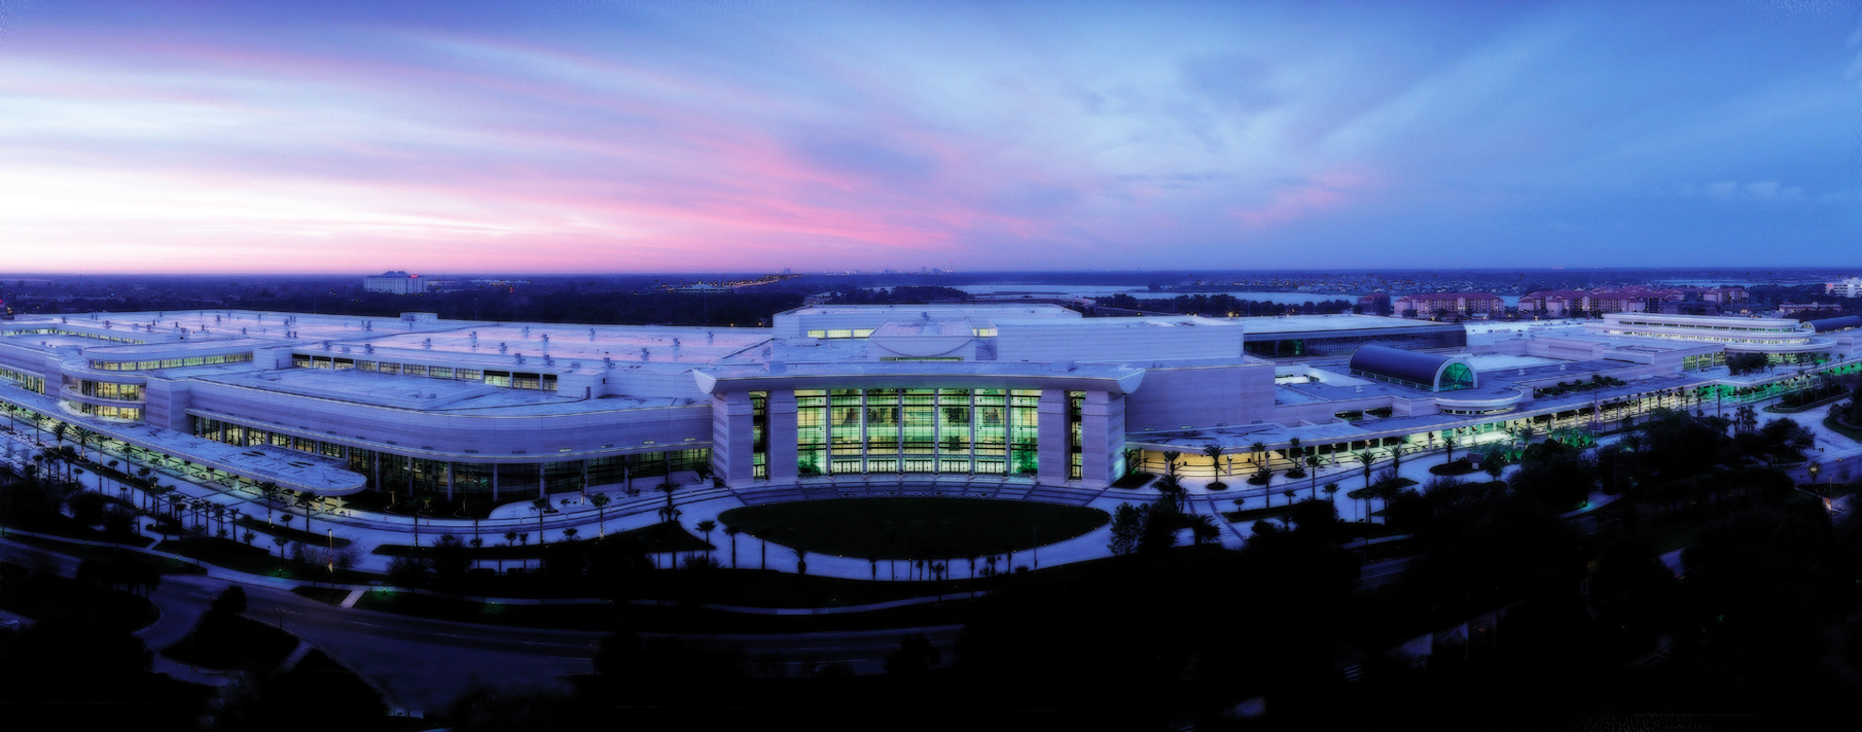 Above view of OCCC at night